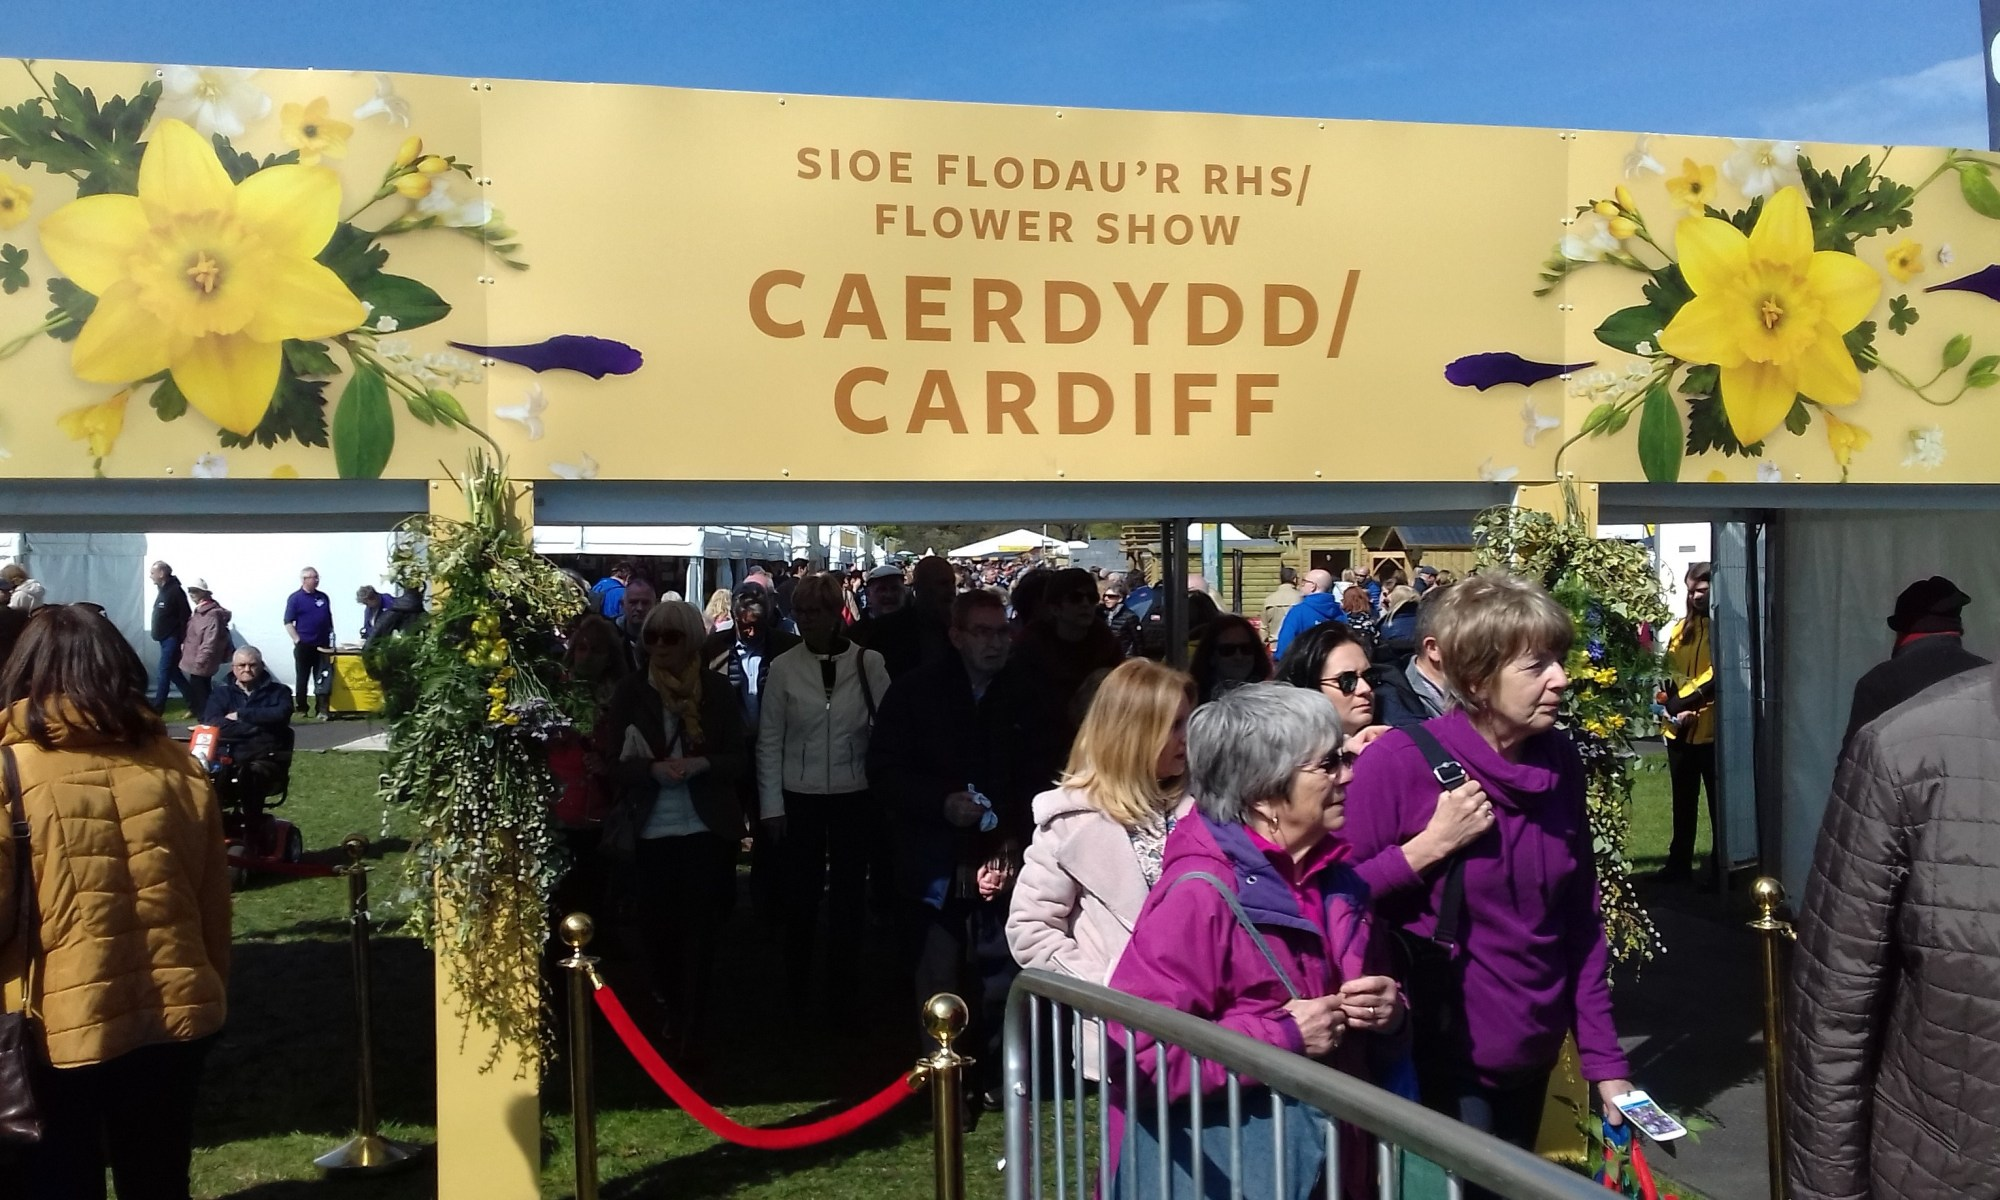 Crowds queuing to enter the show ~RHS cardiff